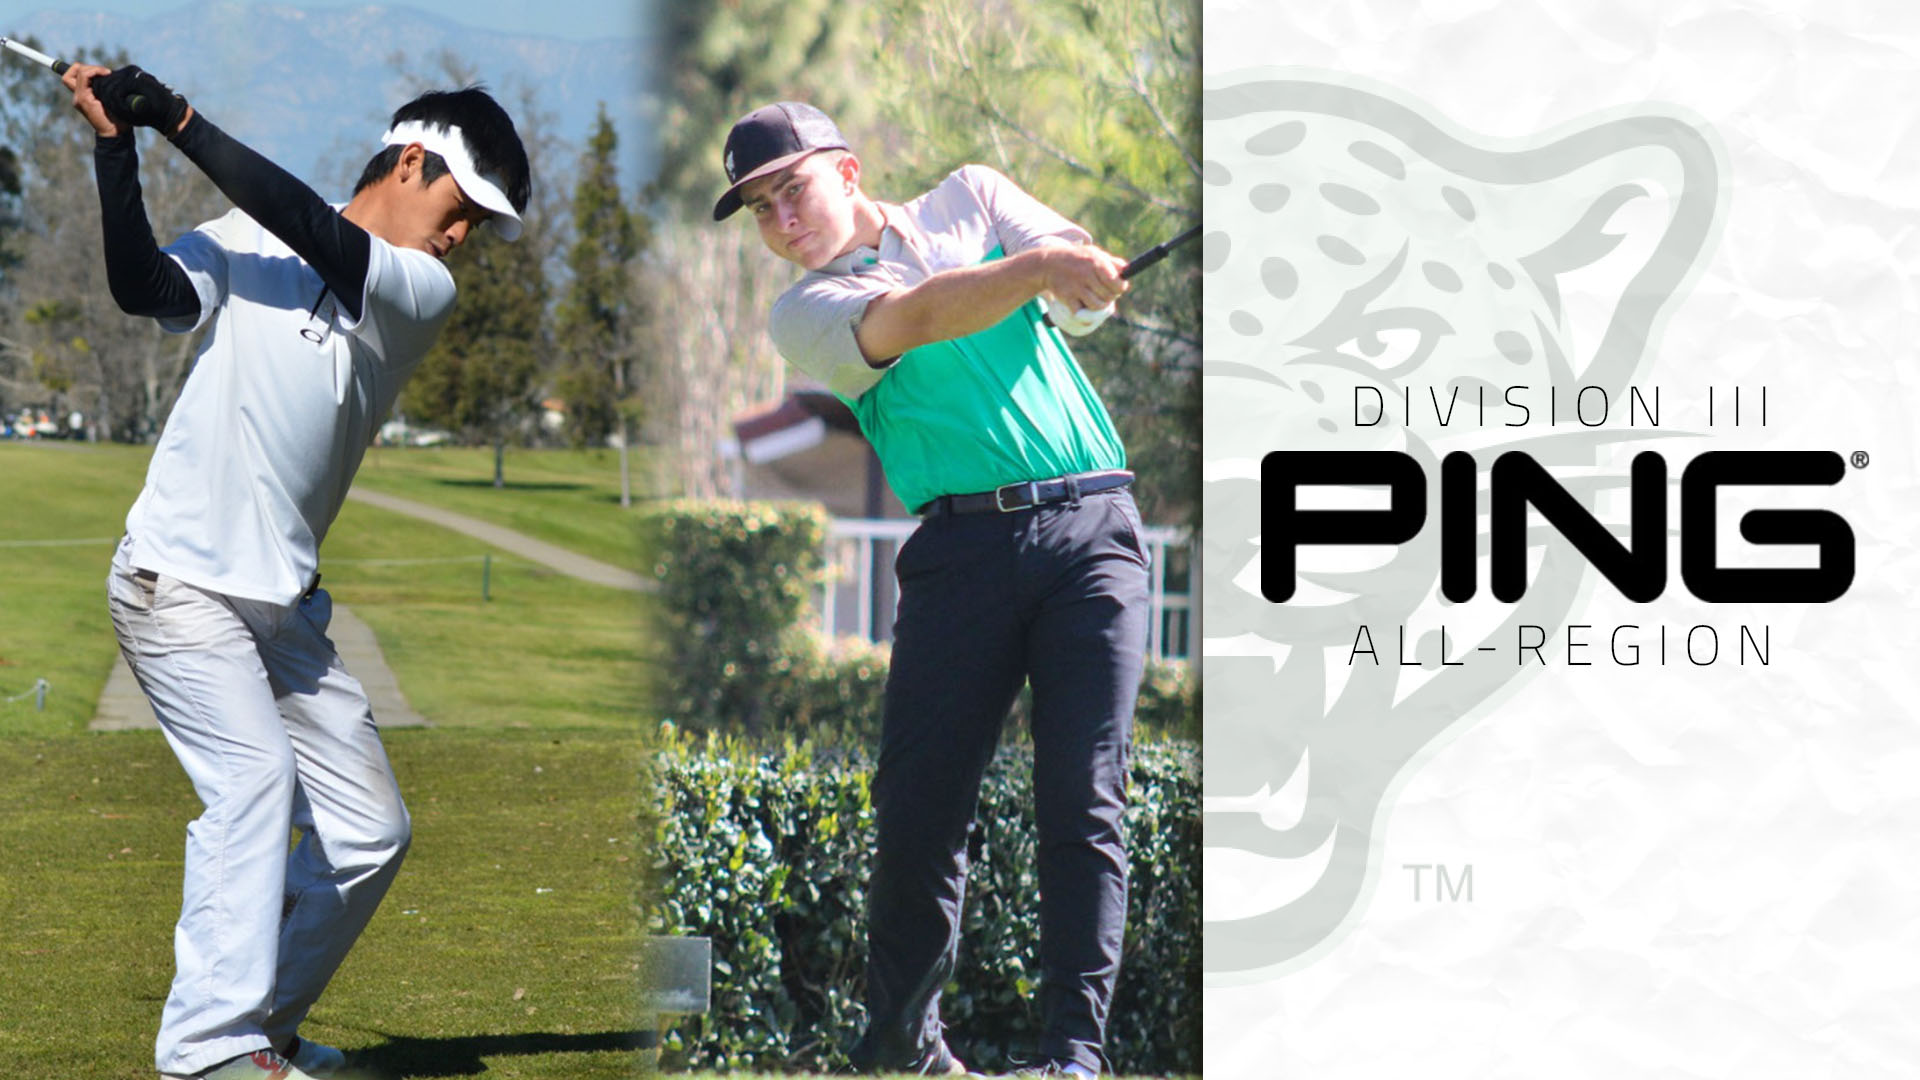 Phanomchai, Hussein named All-Region